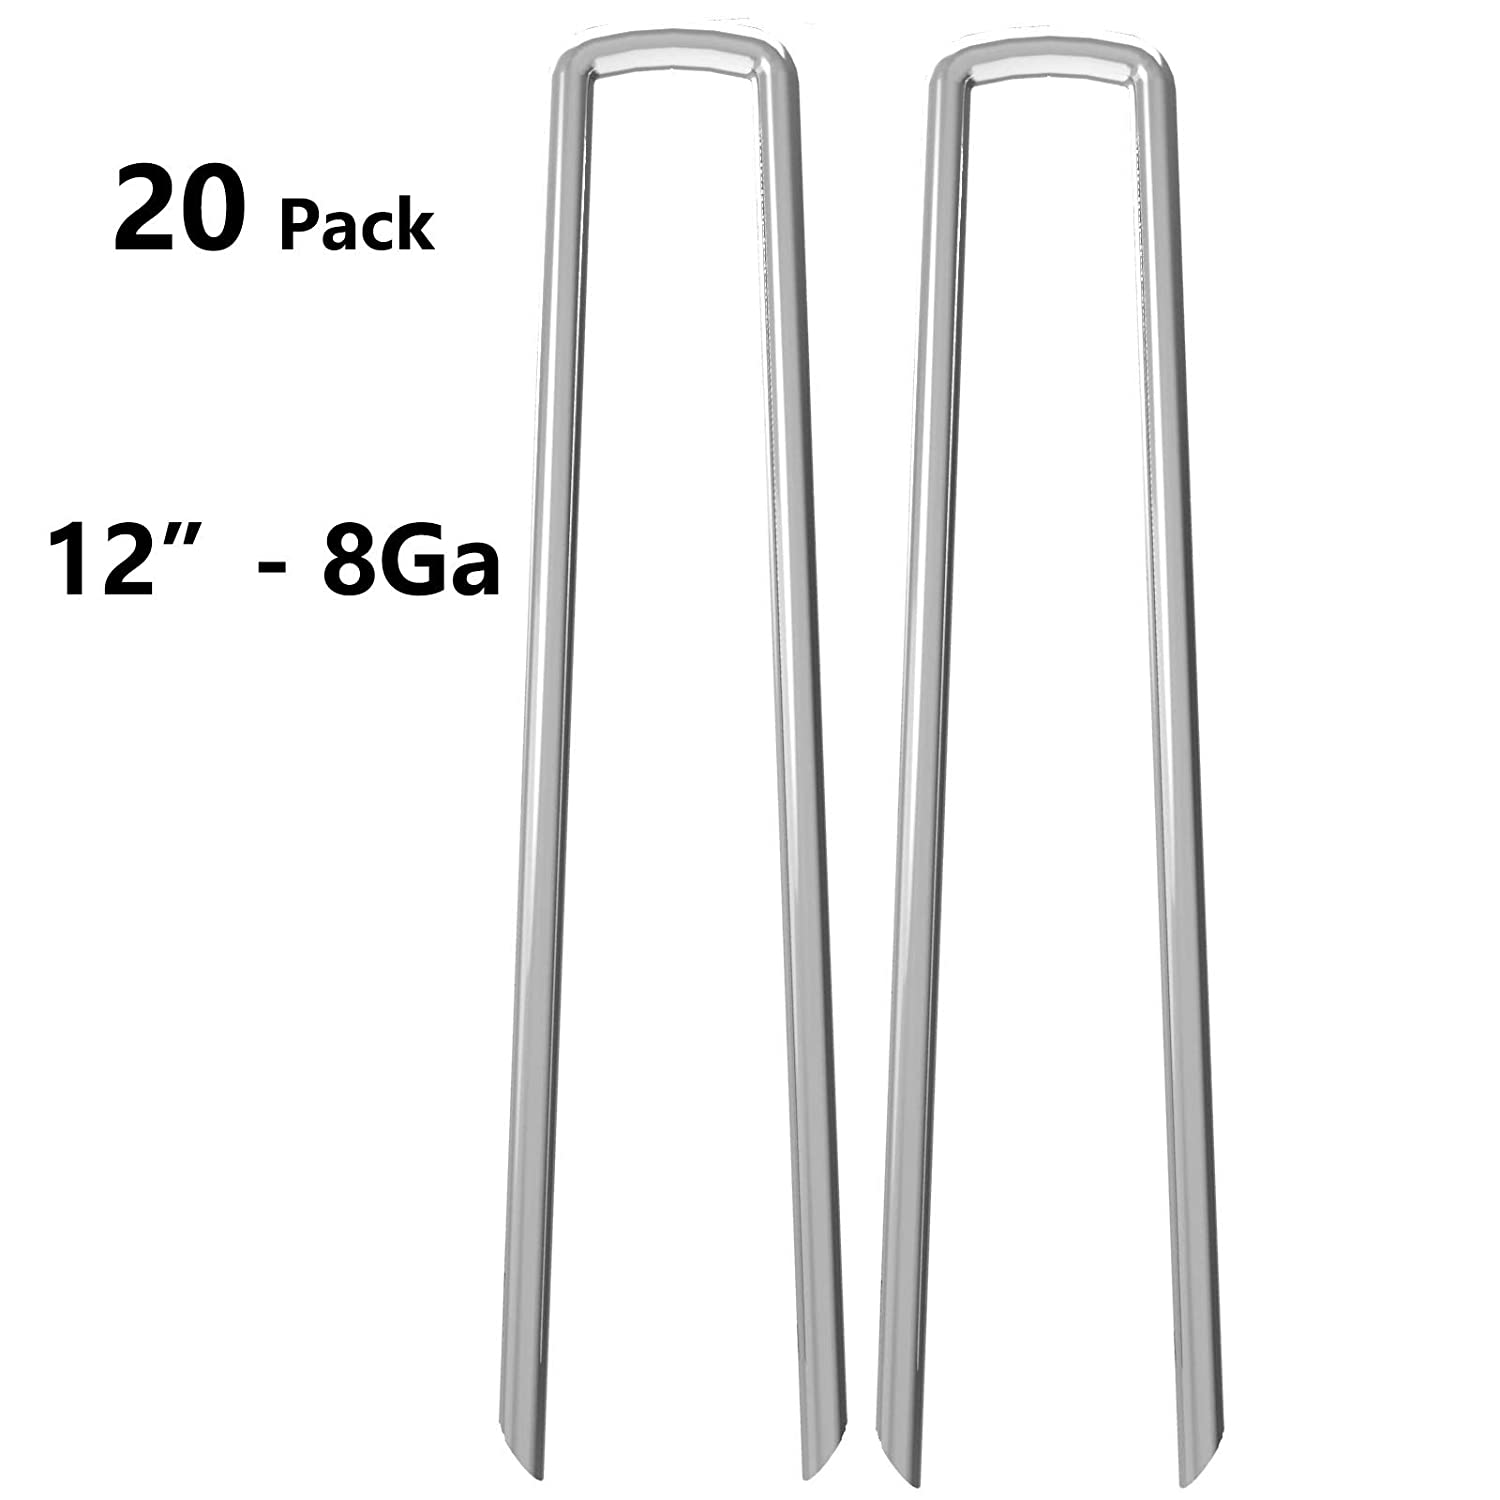 AAGUT OuYi 12 Inch Galvanized Garden Tent Stakes Landscape Staples 8 Gauge Steel Sod and Fence Stake for Anchoring Tents Landscape Fabric Extra Heavy Duty 20 Packs